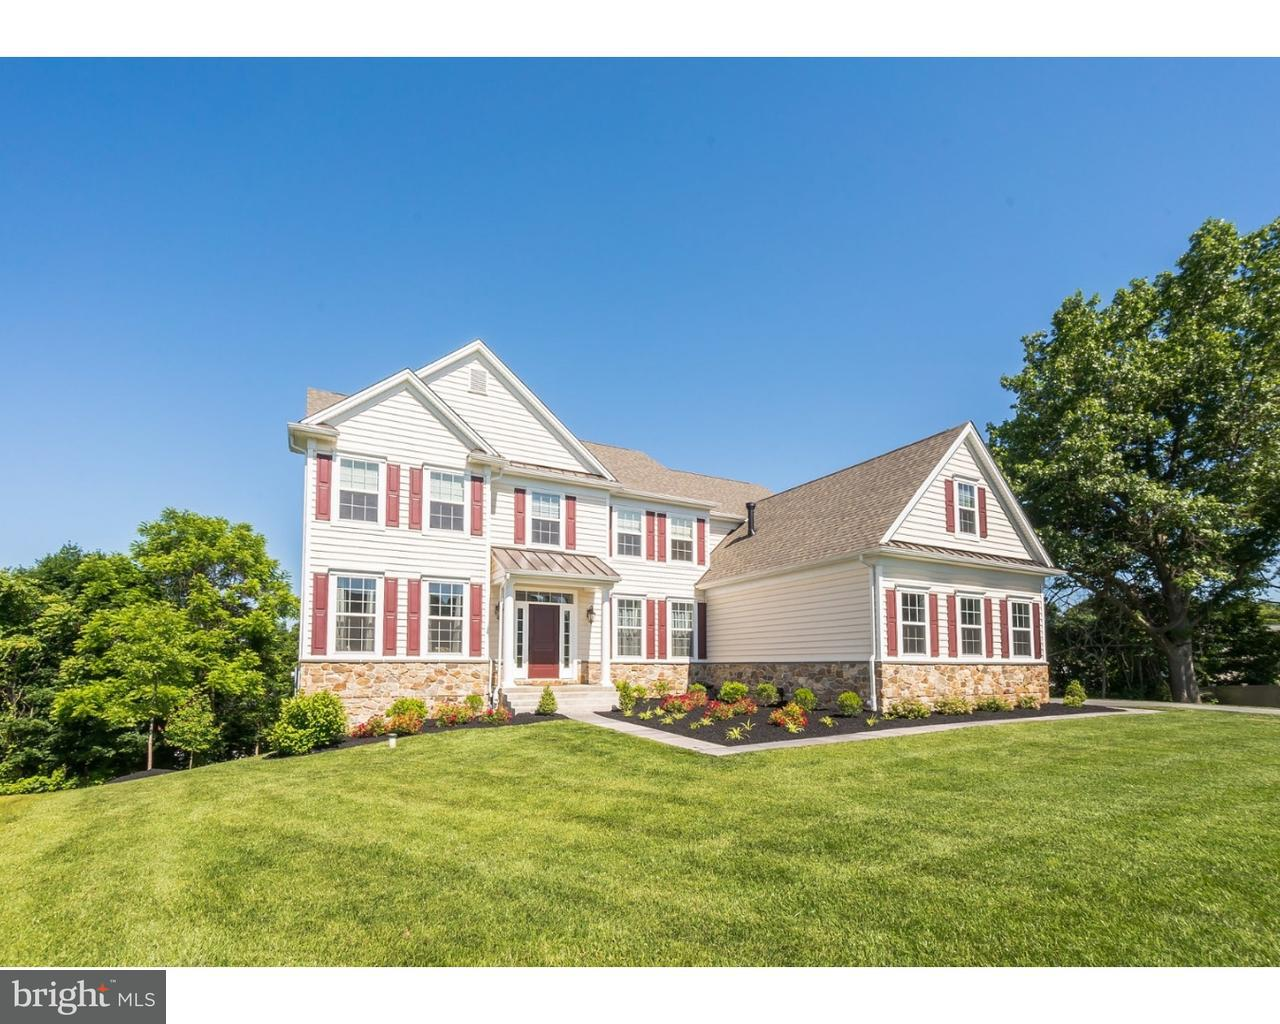 22 Gallop Lane West Chester, PA 19380